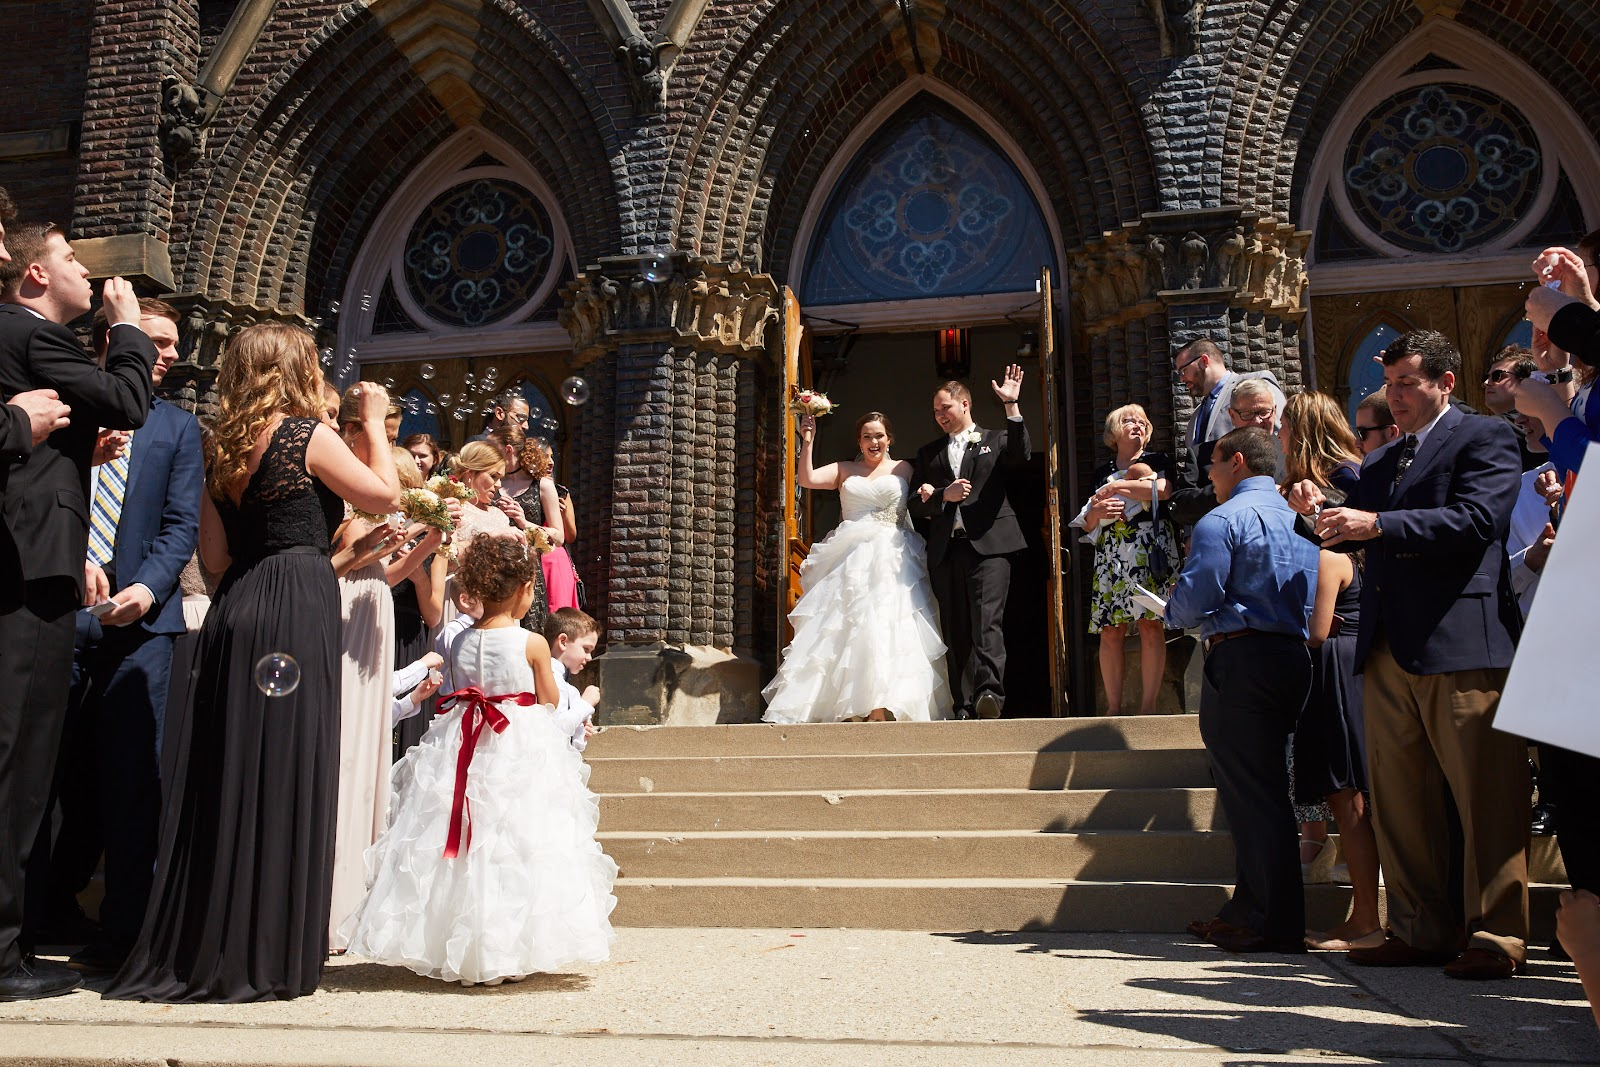 Real WedTexts Wedding Nick and Lauren Tuell